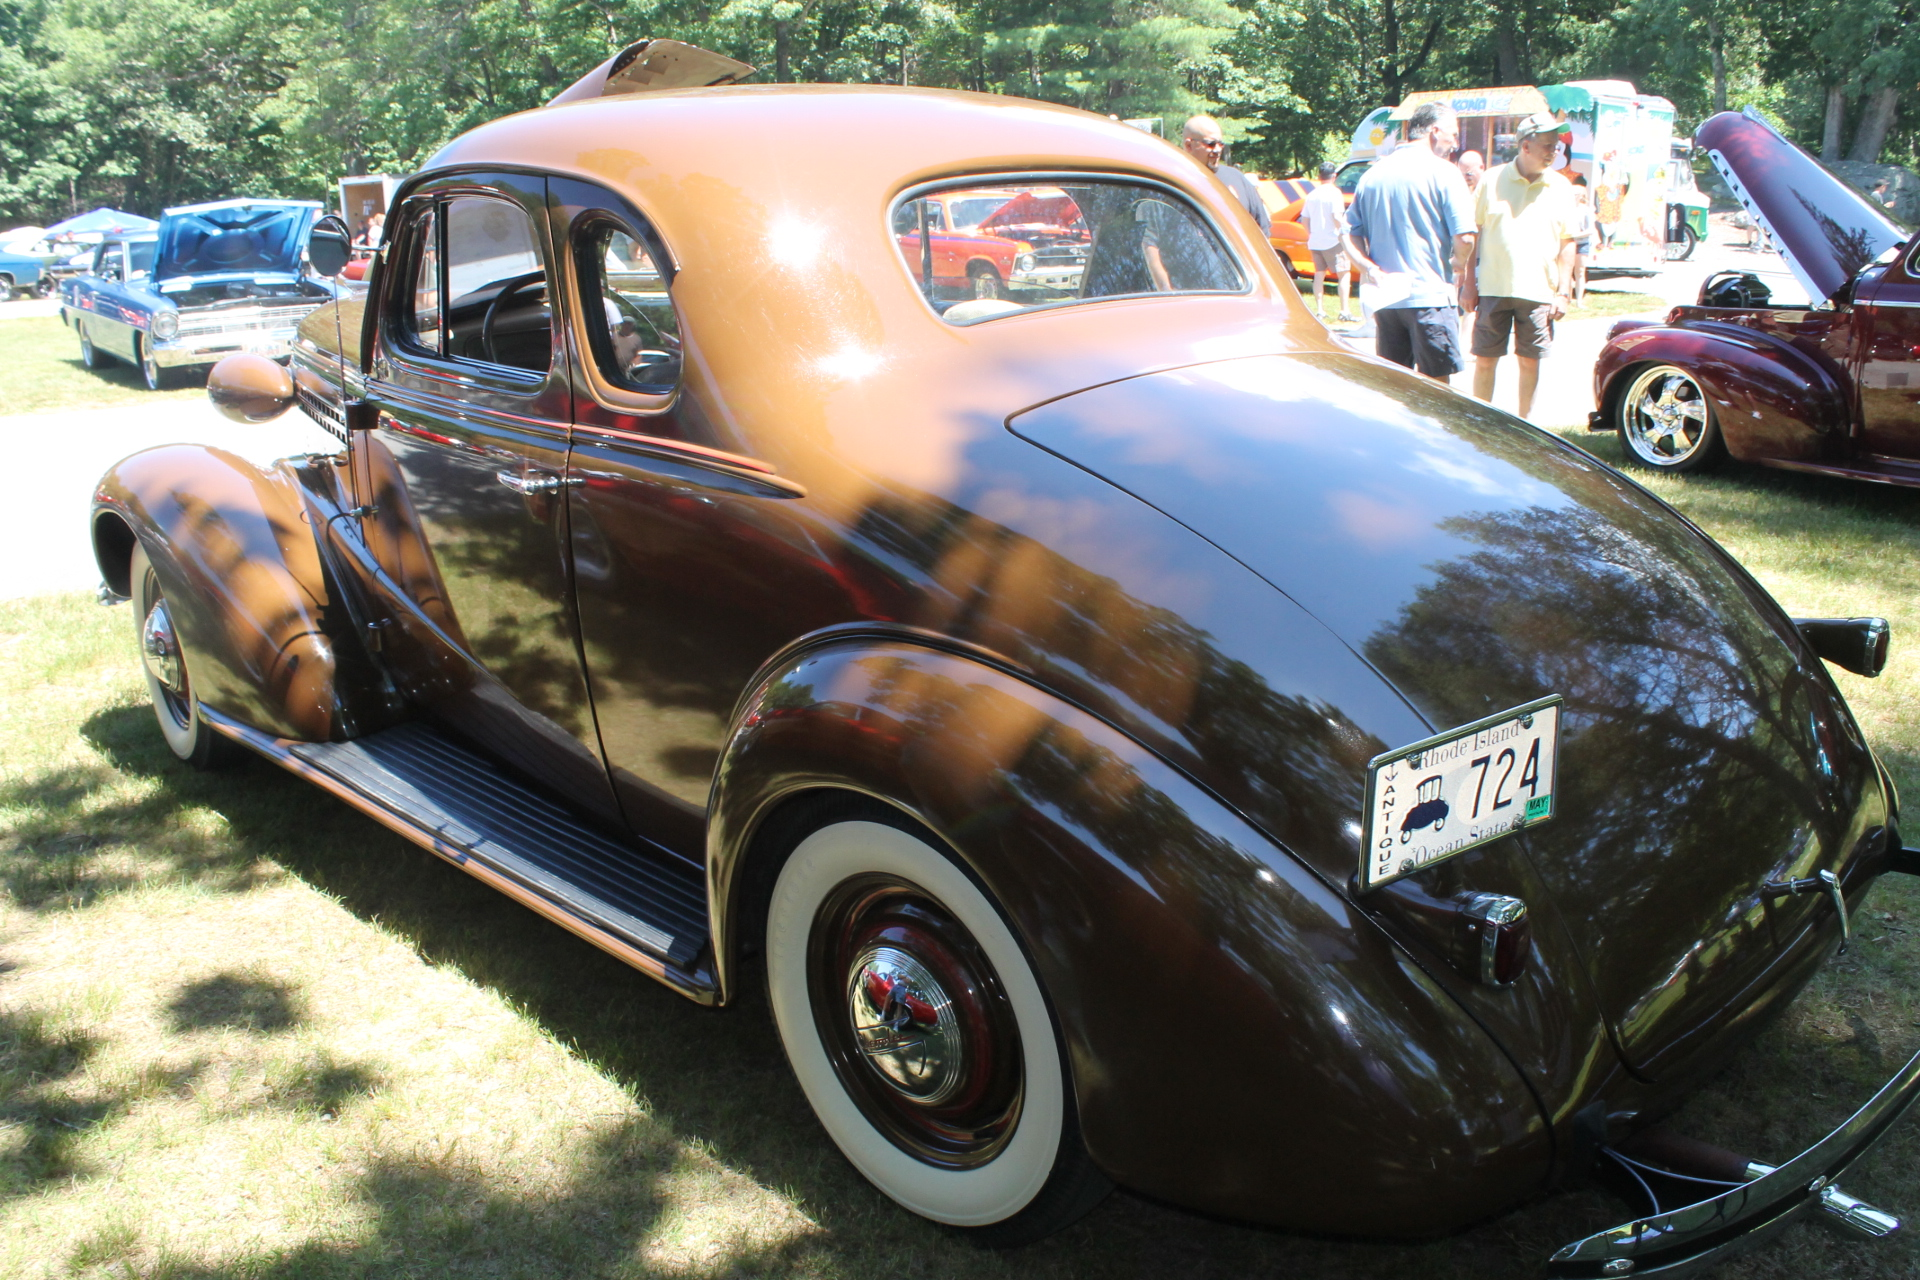 1938 Chevy Coupe For Sale On Craigslist >> 1938 Chevrolet For Sale Craigslist | Autos Post